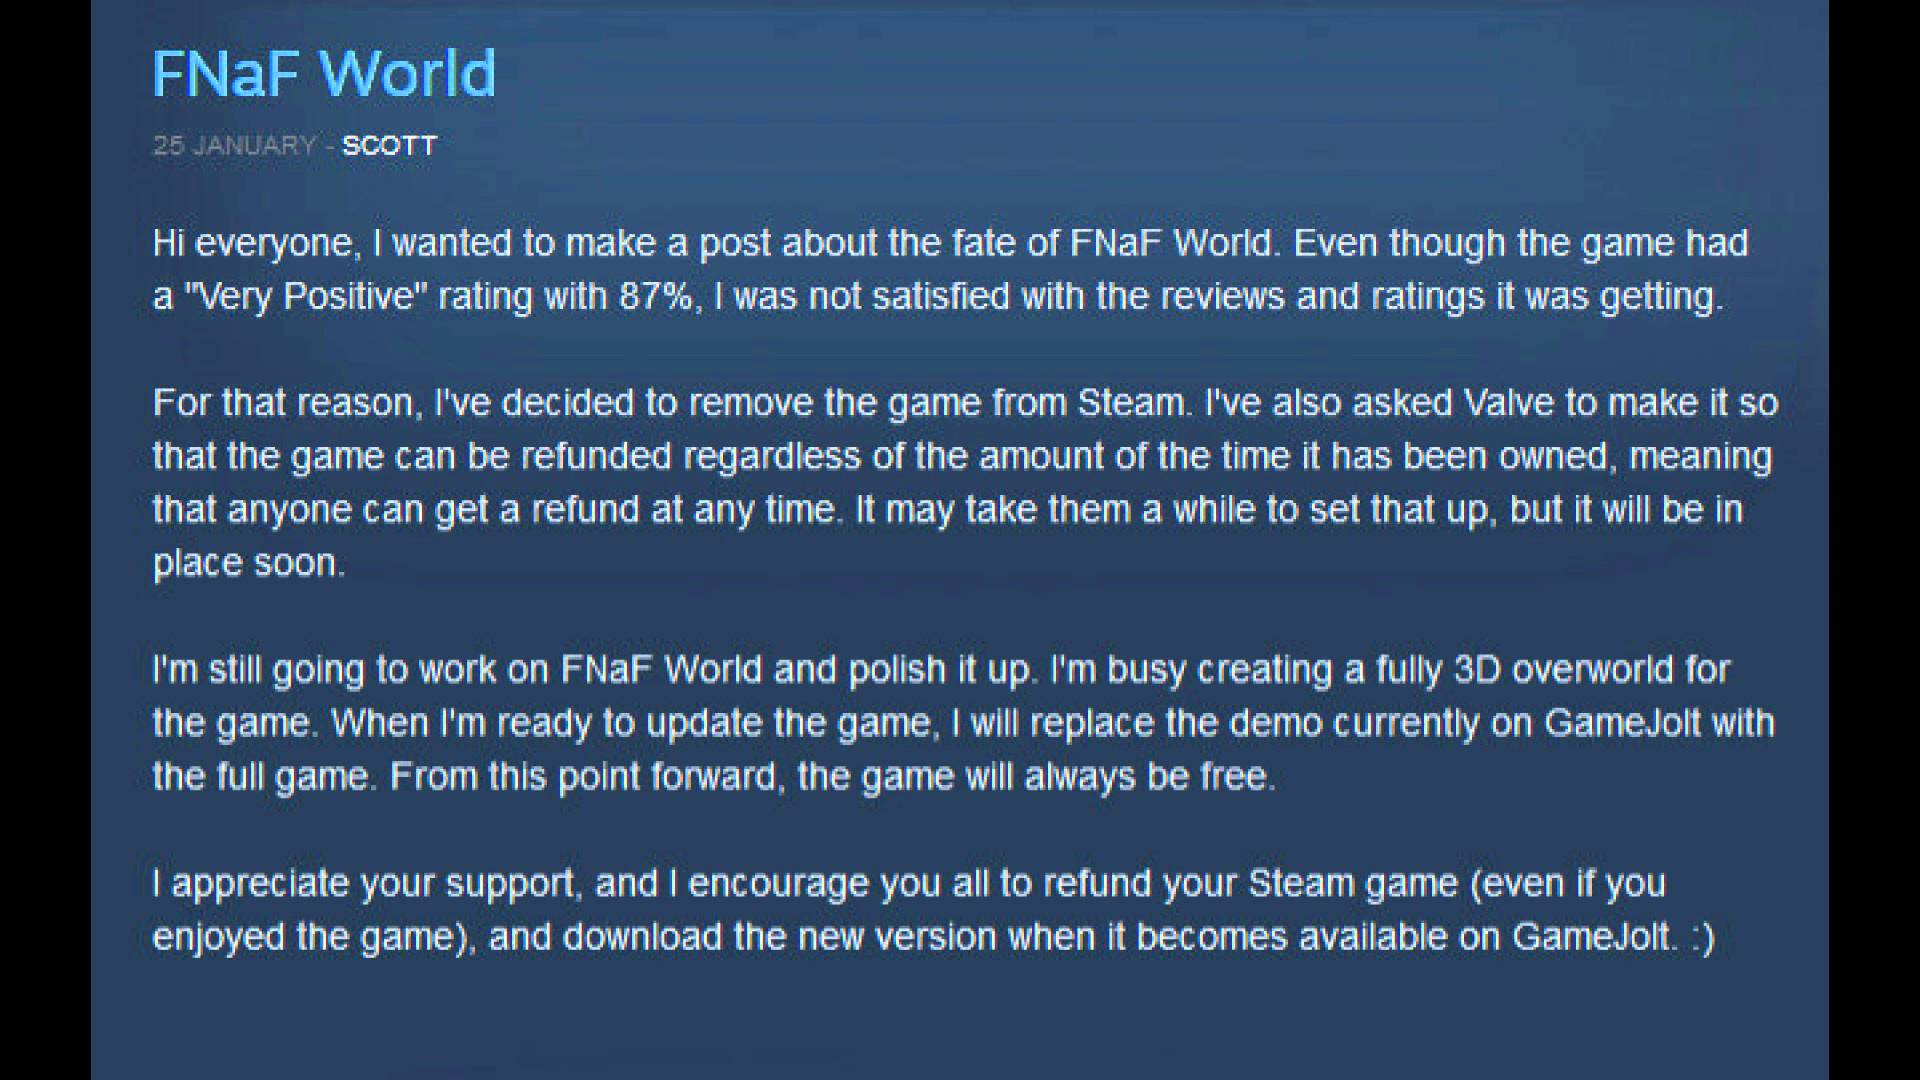 Fnaf world removed from steam